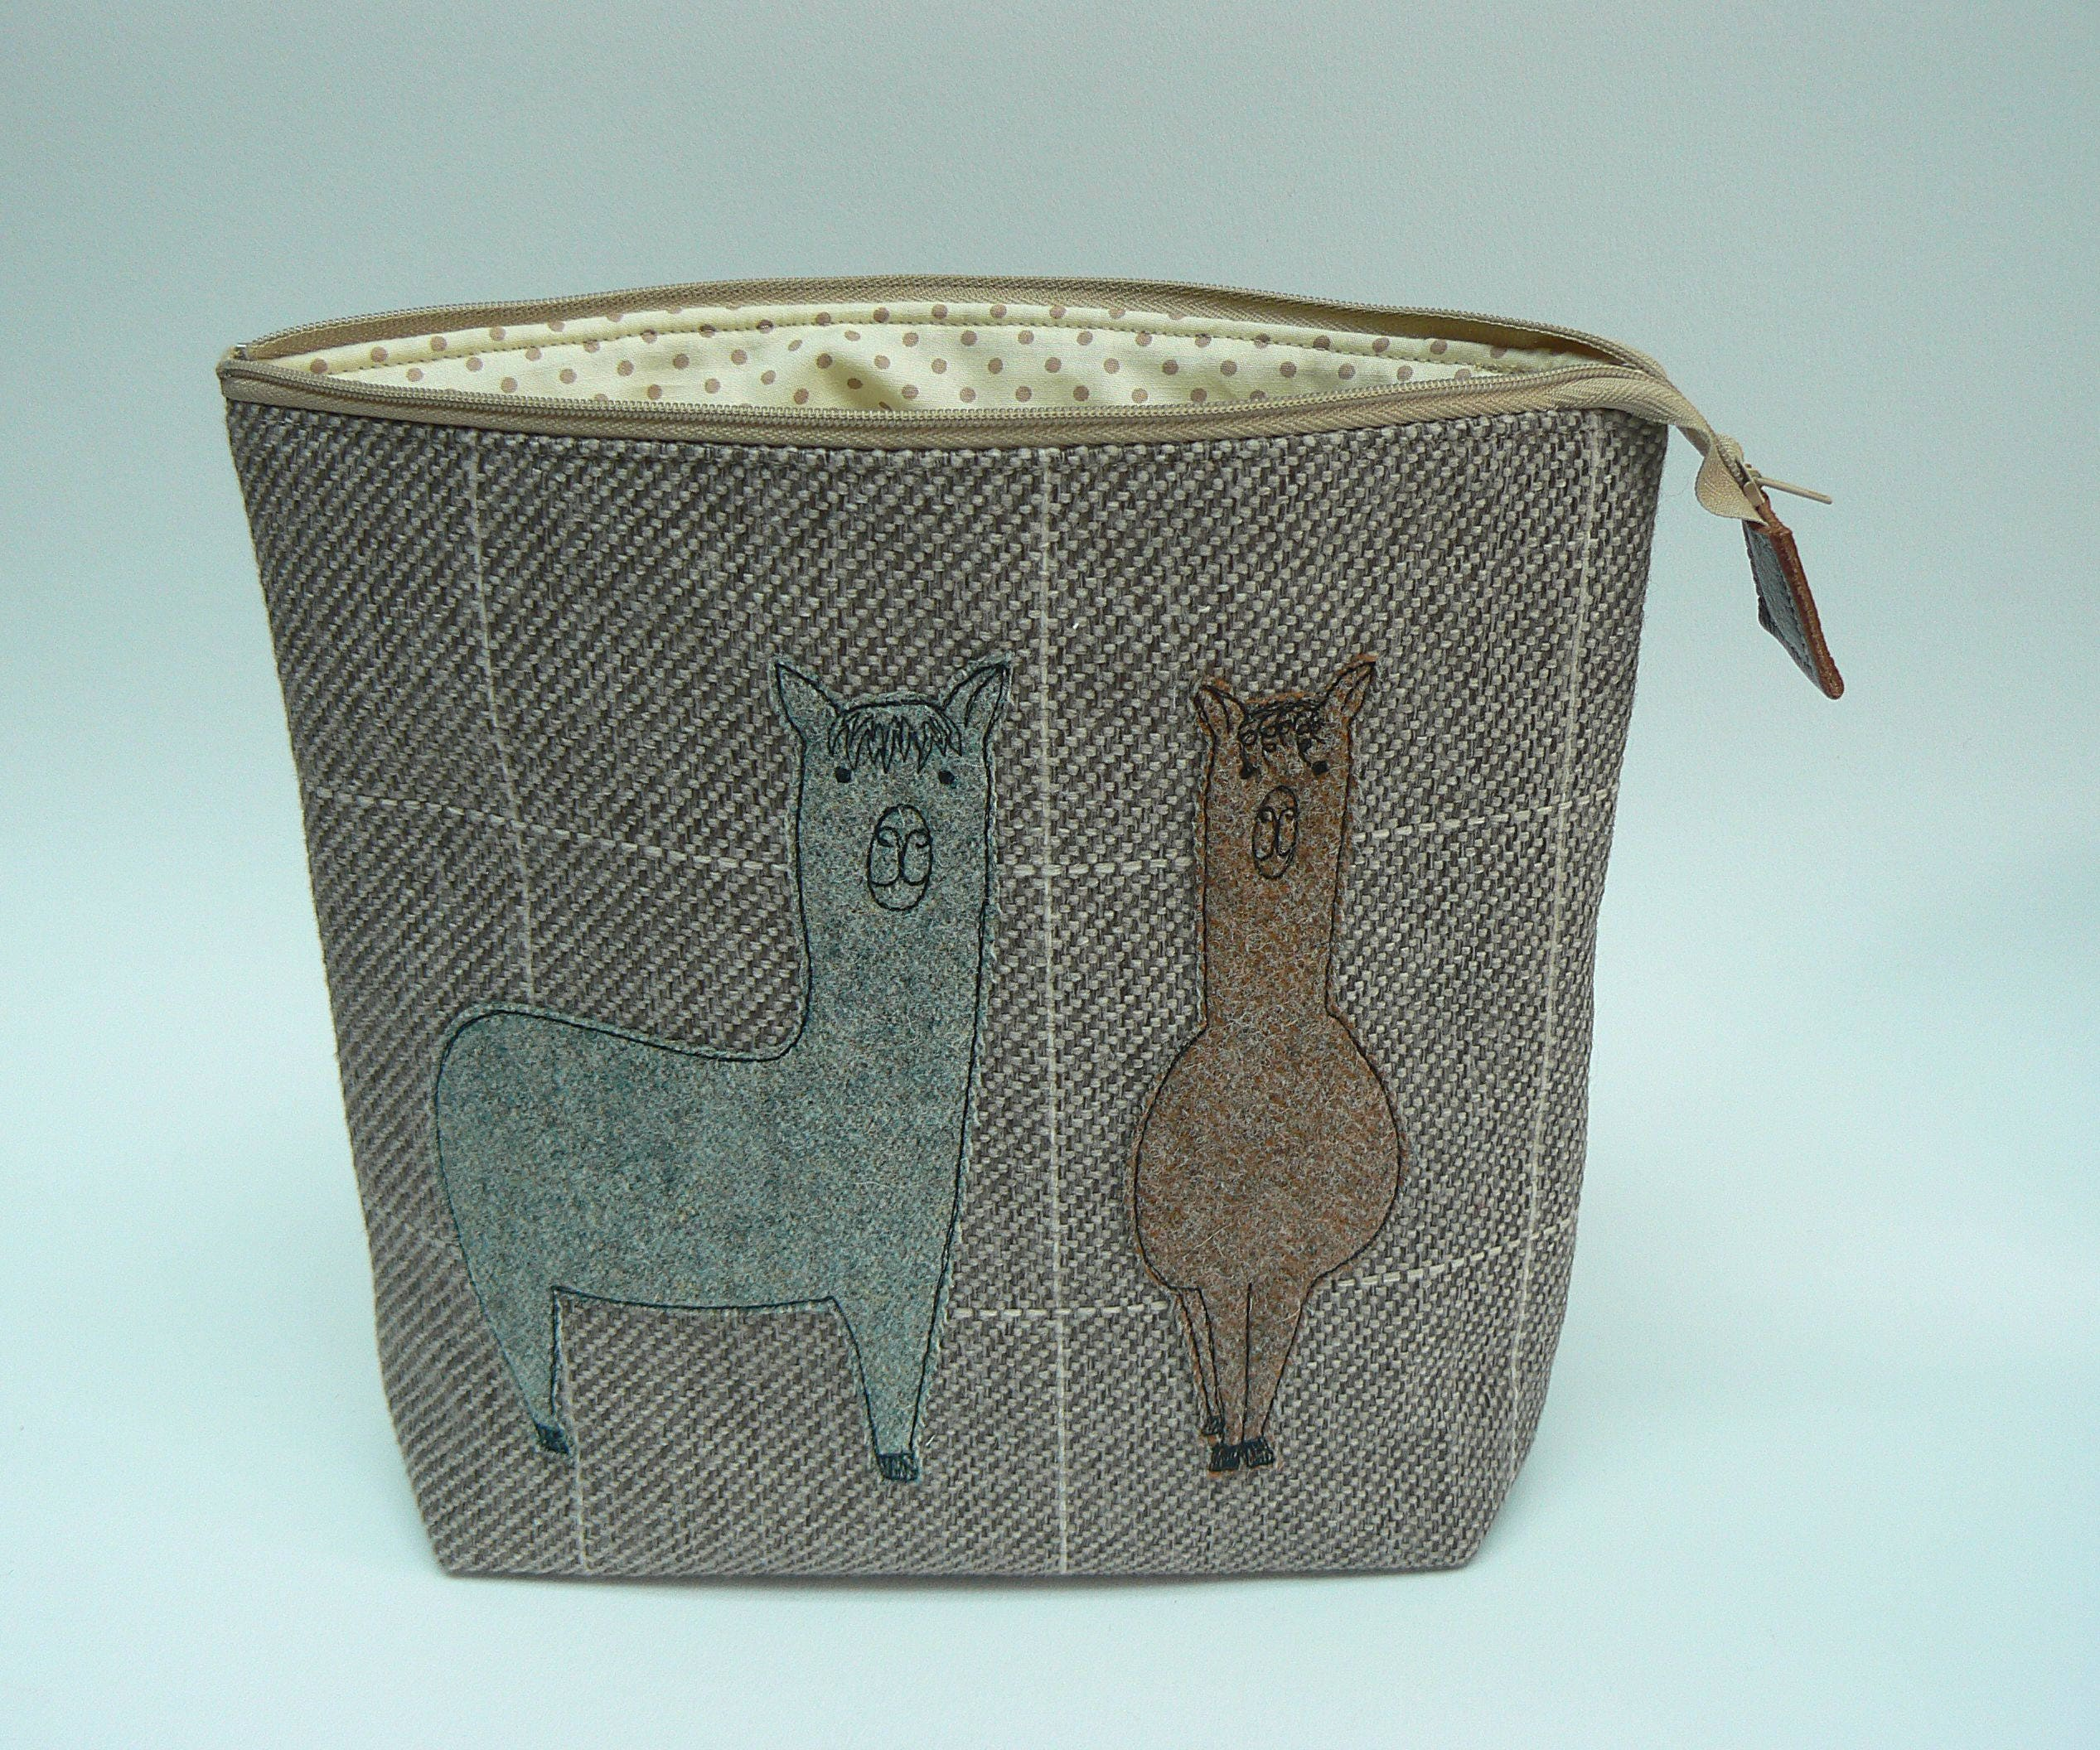 Tweedy alpacas applique zipped knitting project bag craft project bag